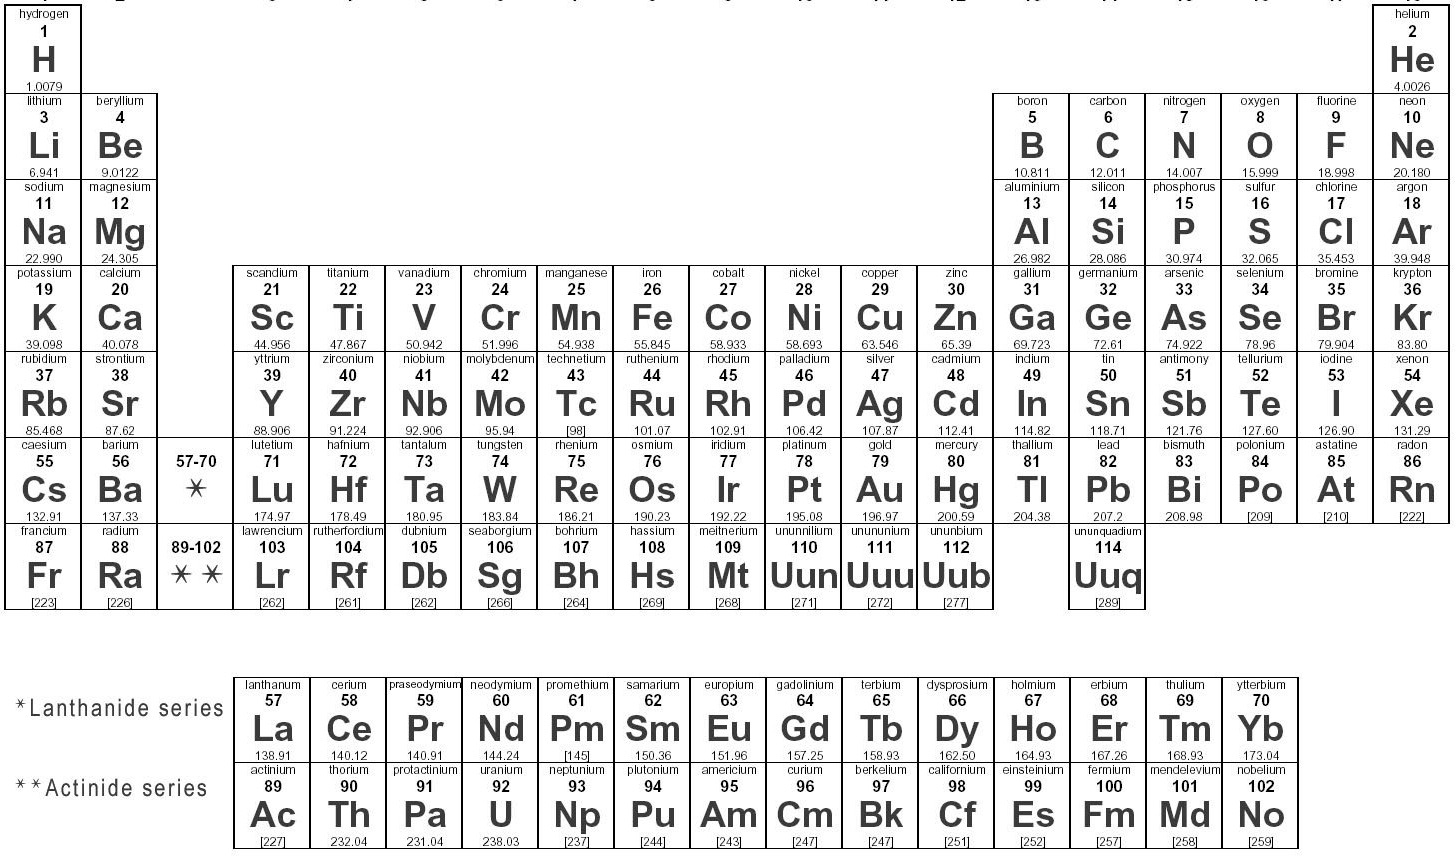 worksheet elements mixtures and compounds worksheet elements compounds mixtures and the periodic table science these come - Periodic Table Ks3 Worksheet